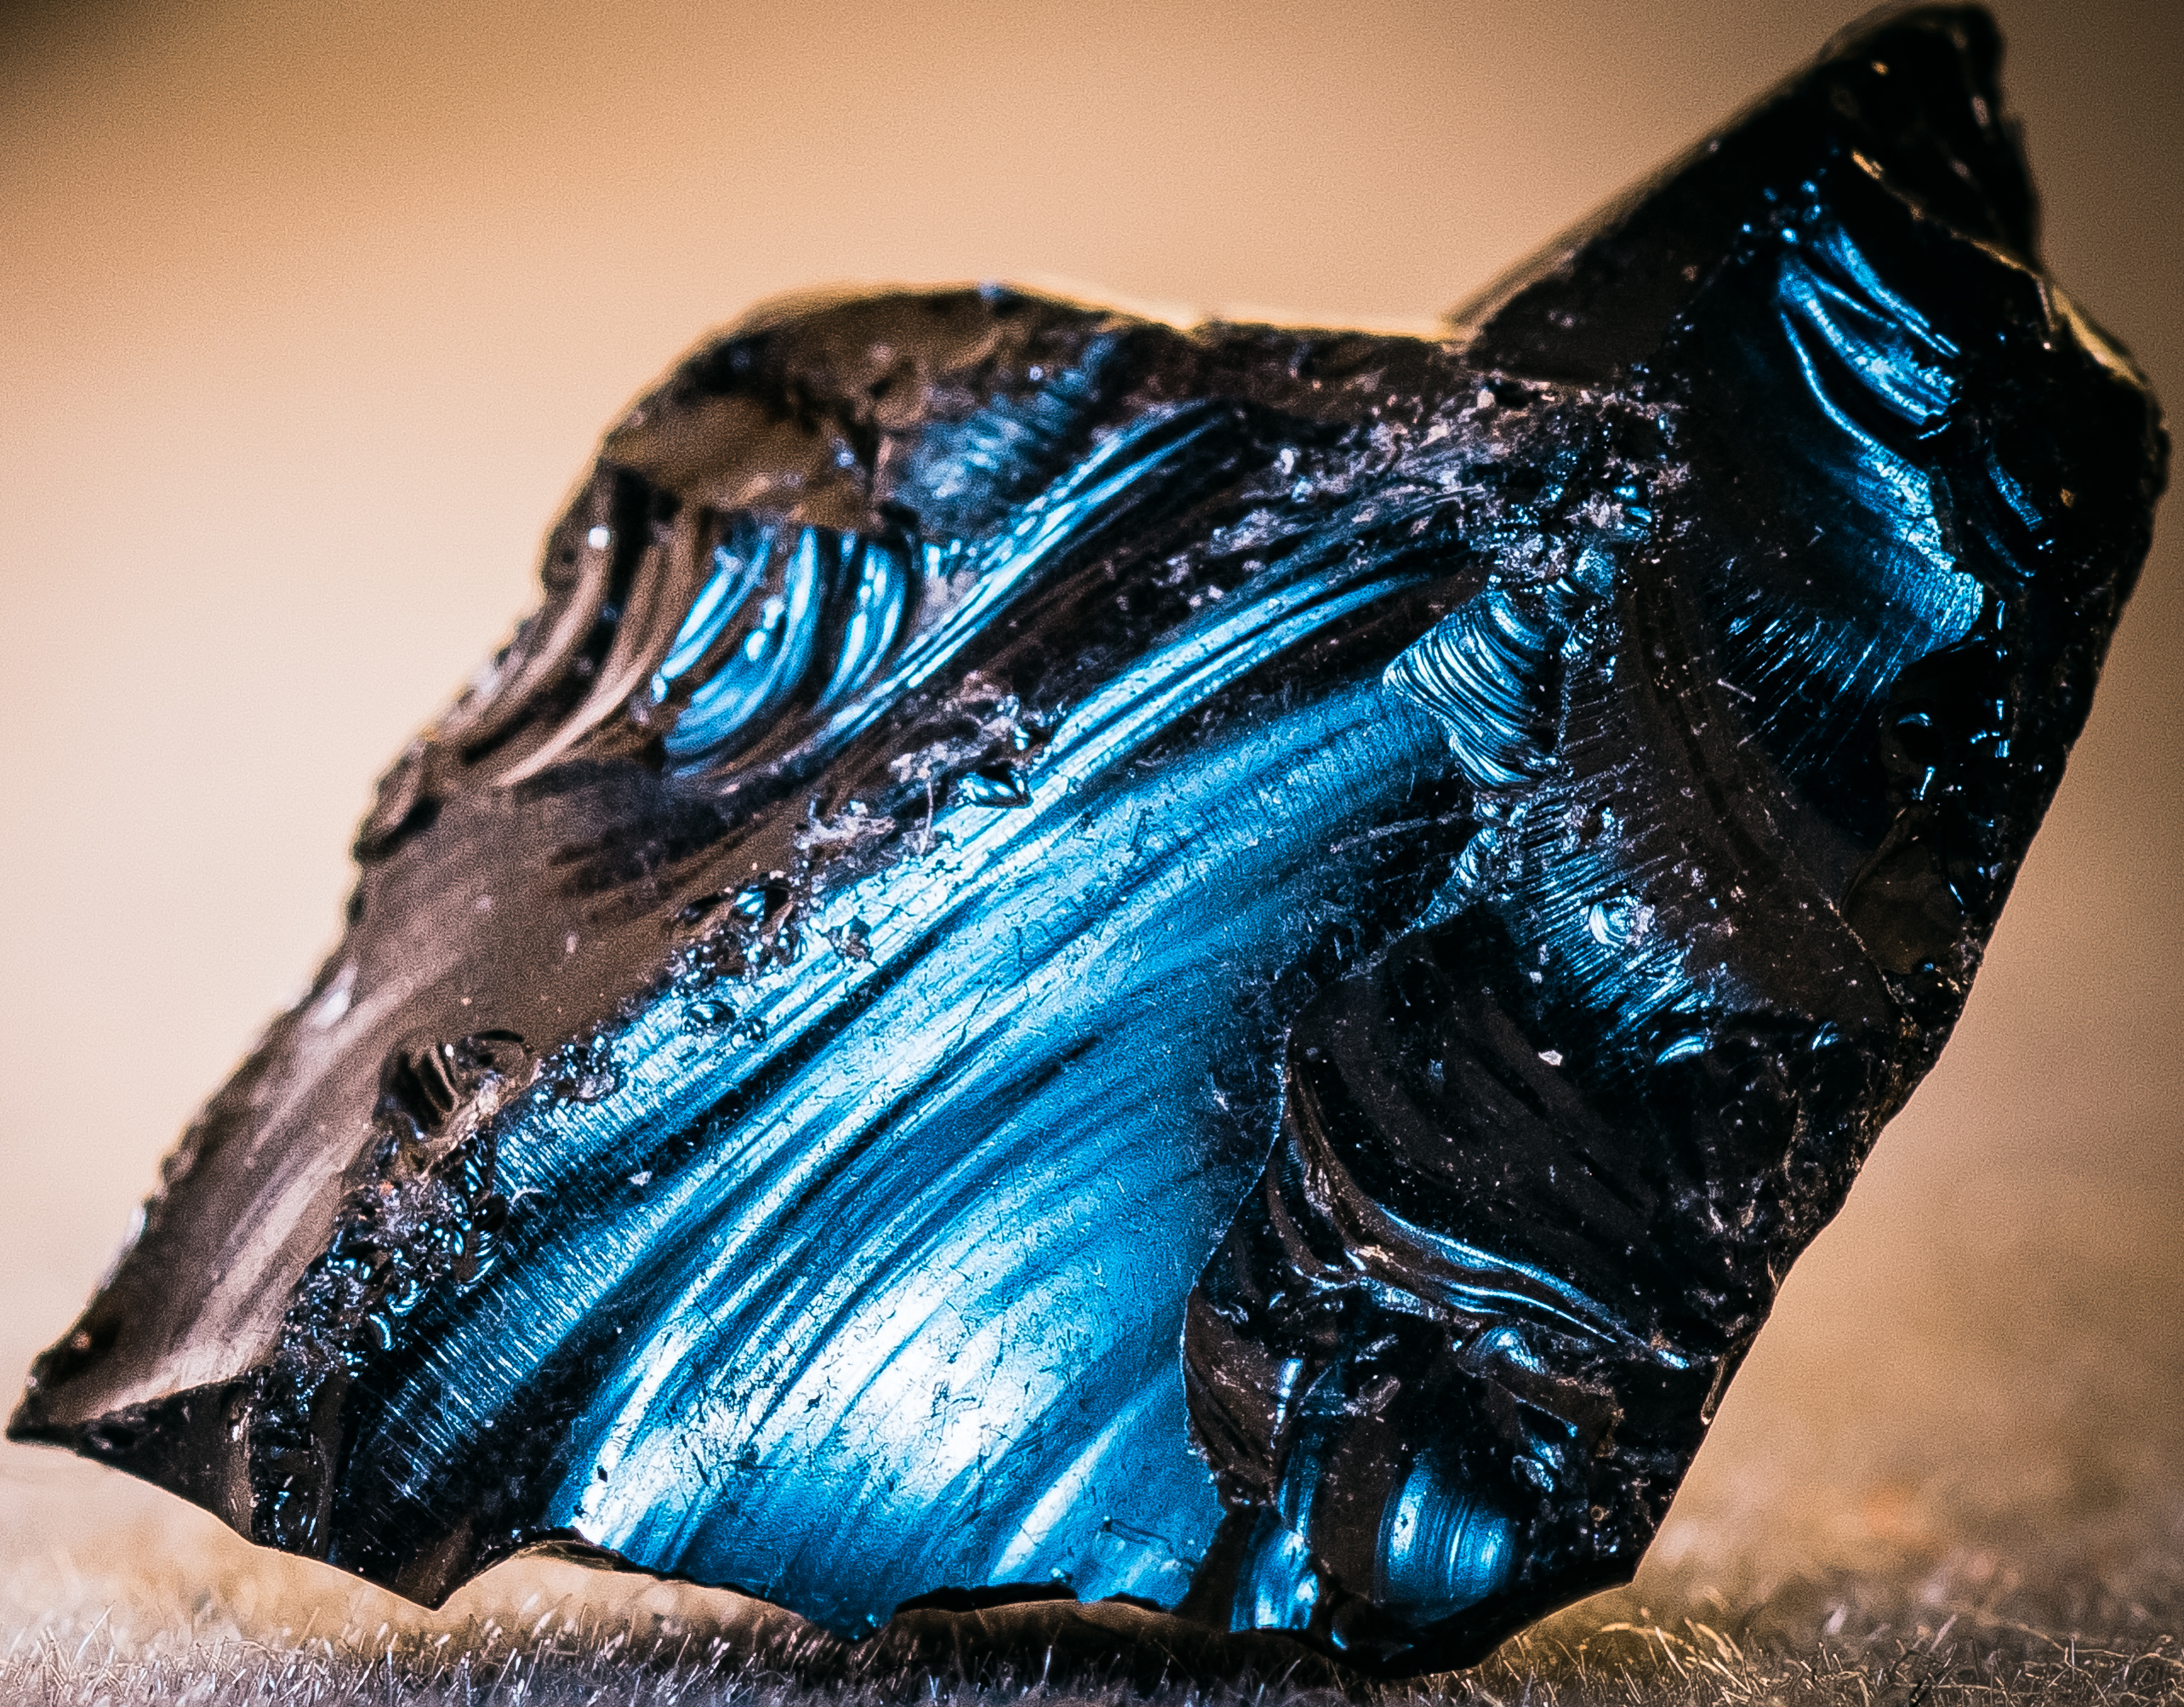 Dragonglass is real, even if white walkers (hopefully) aren't